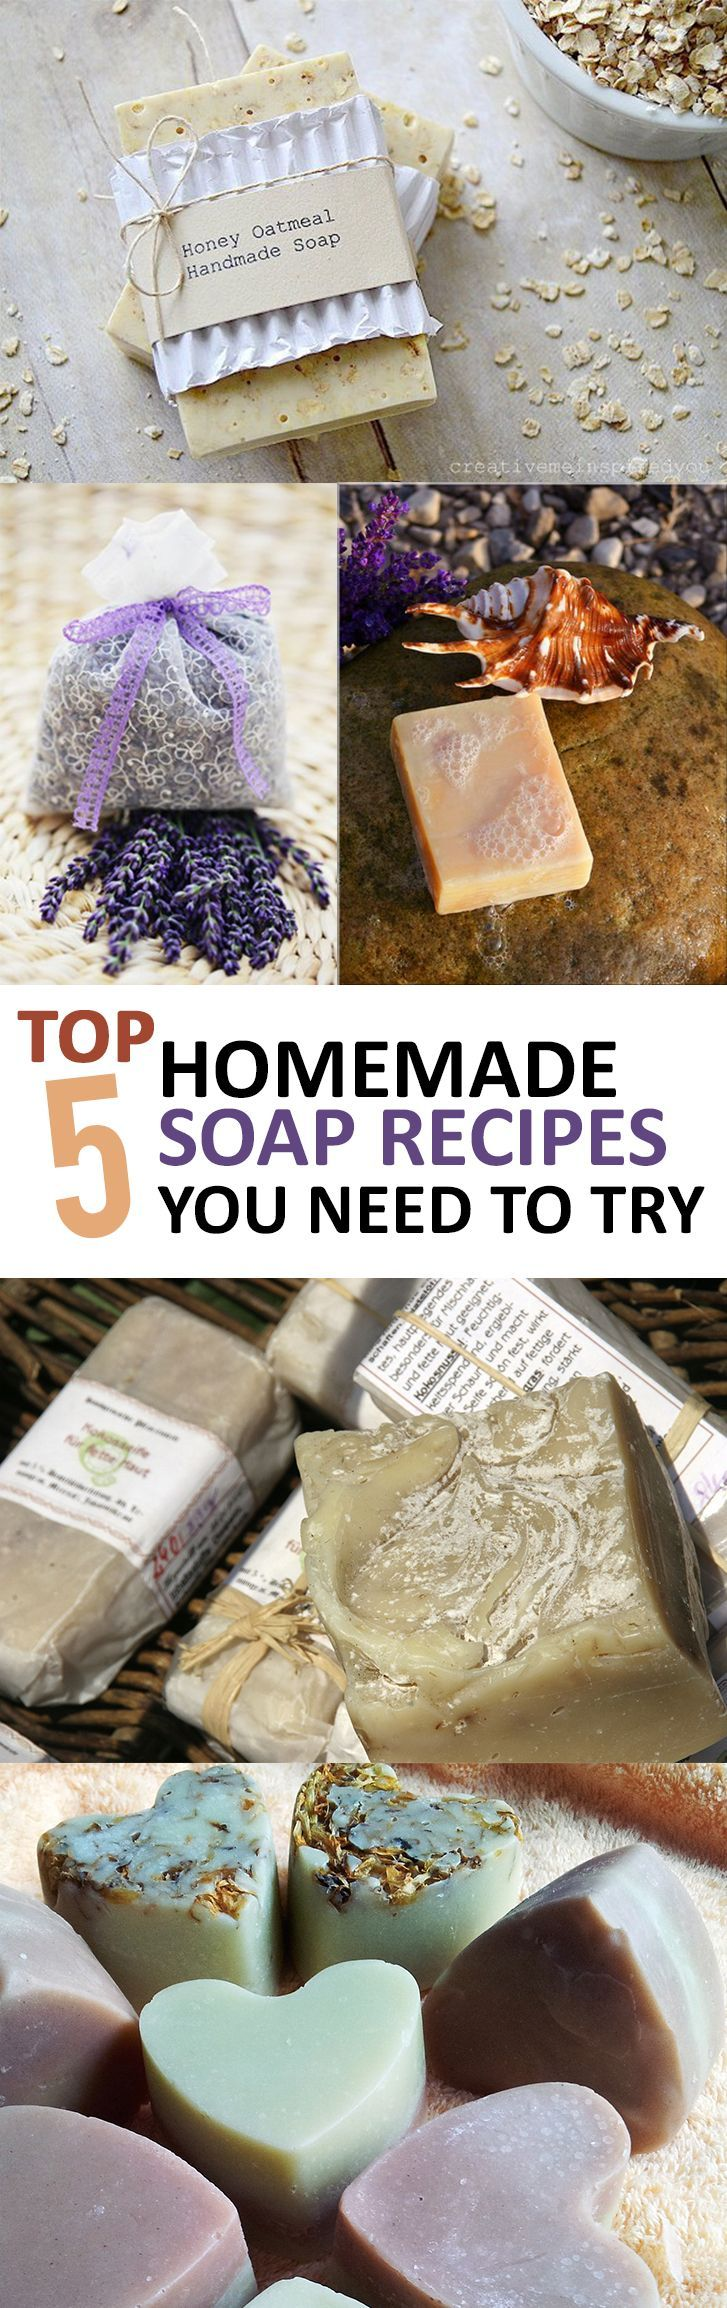 Top 5 Homemade Soap Recipes You Need to Try (1)